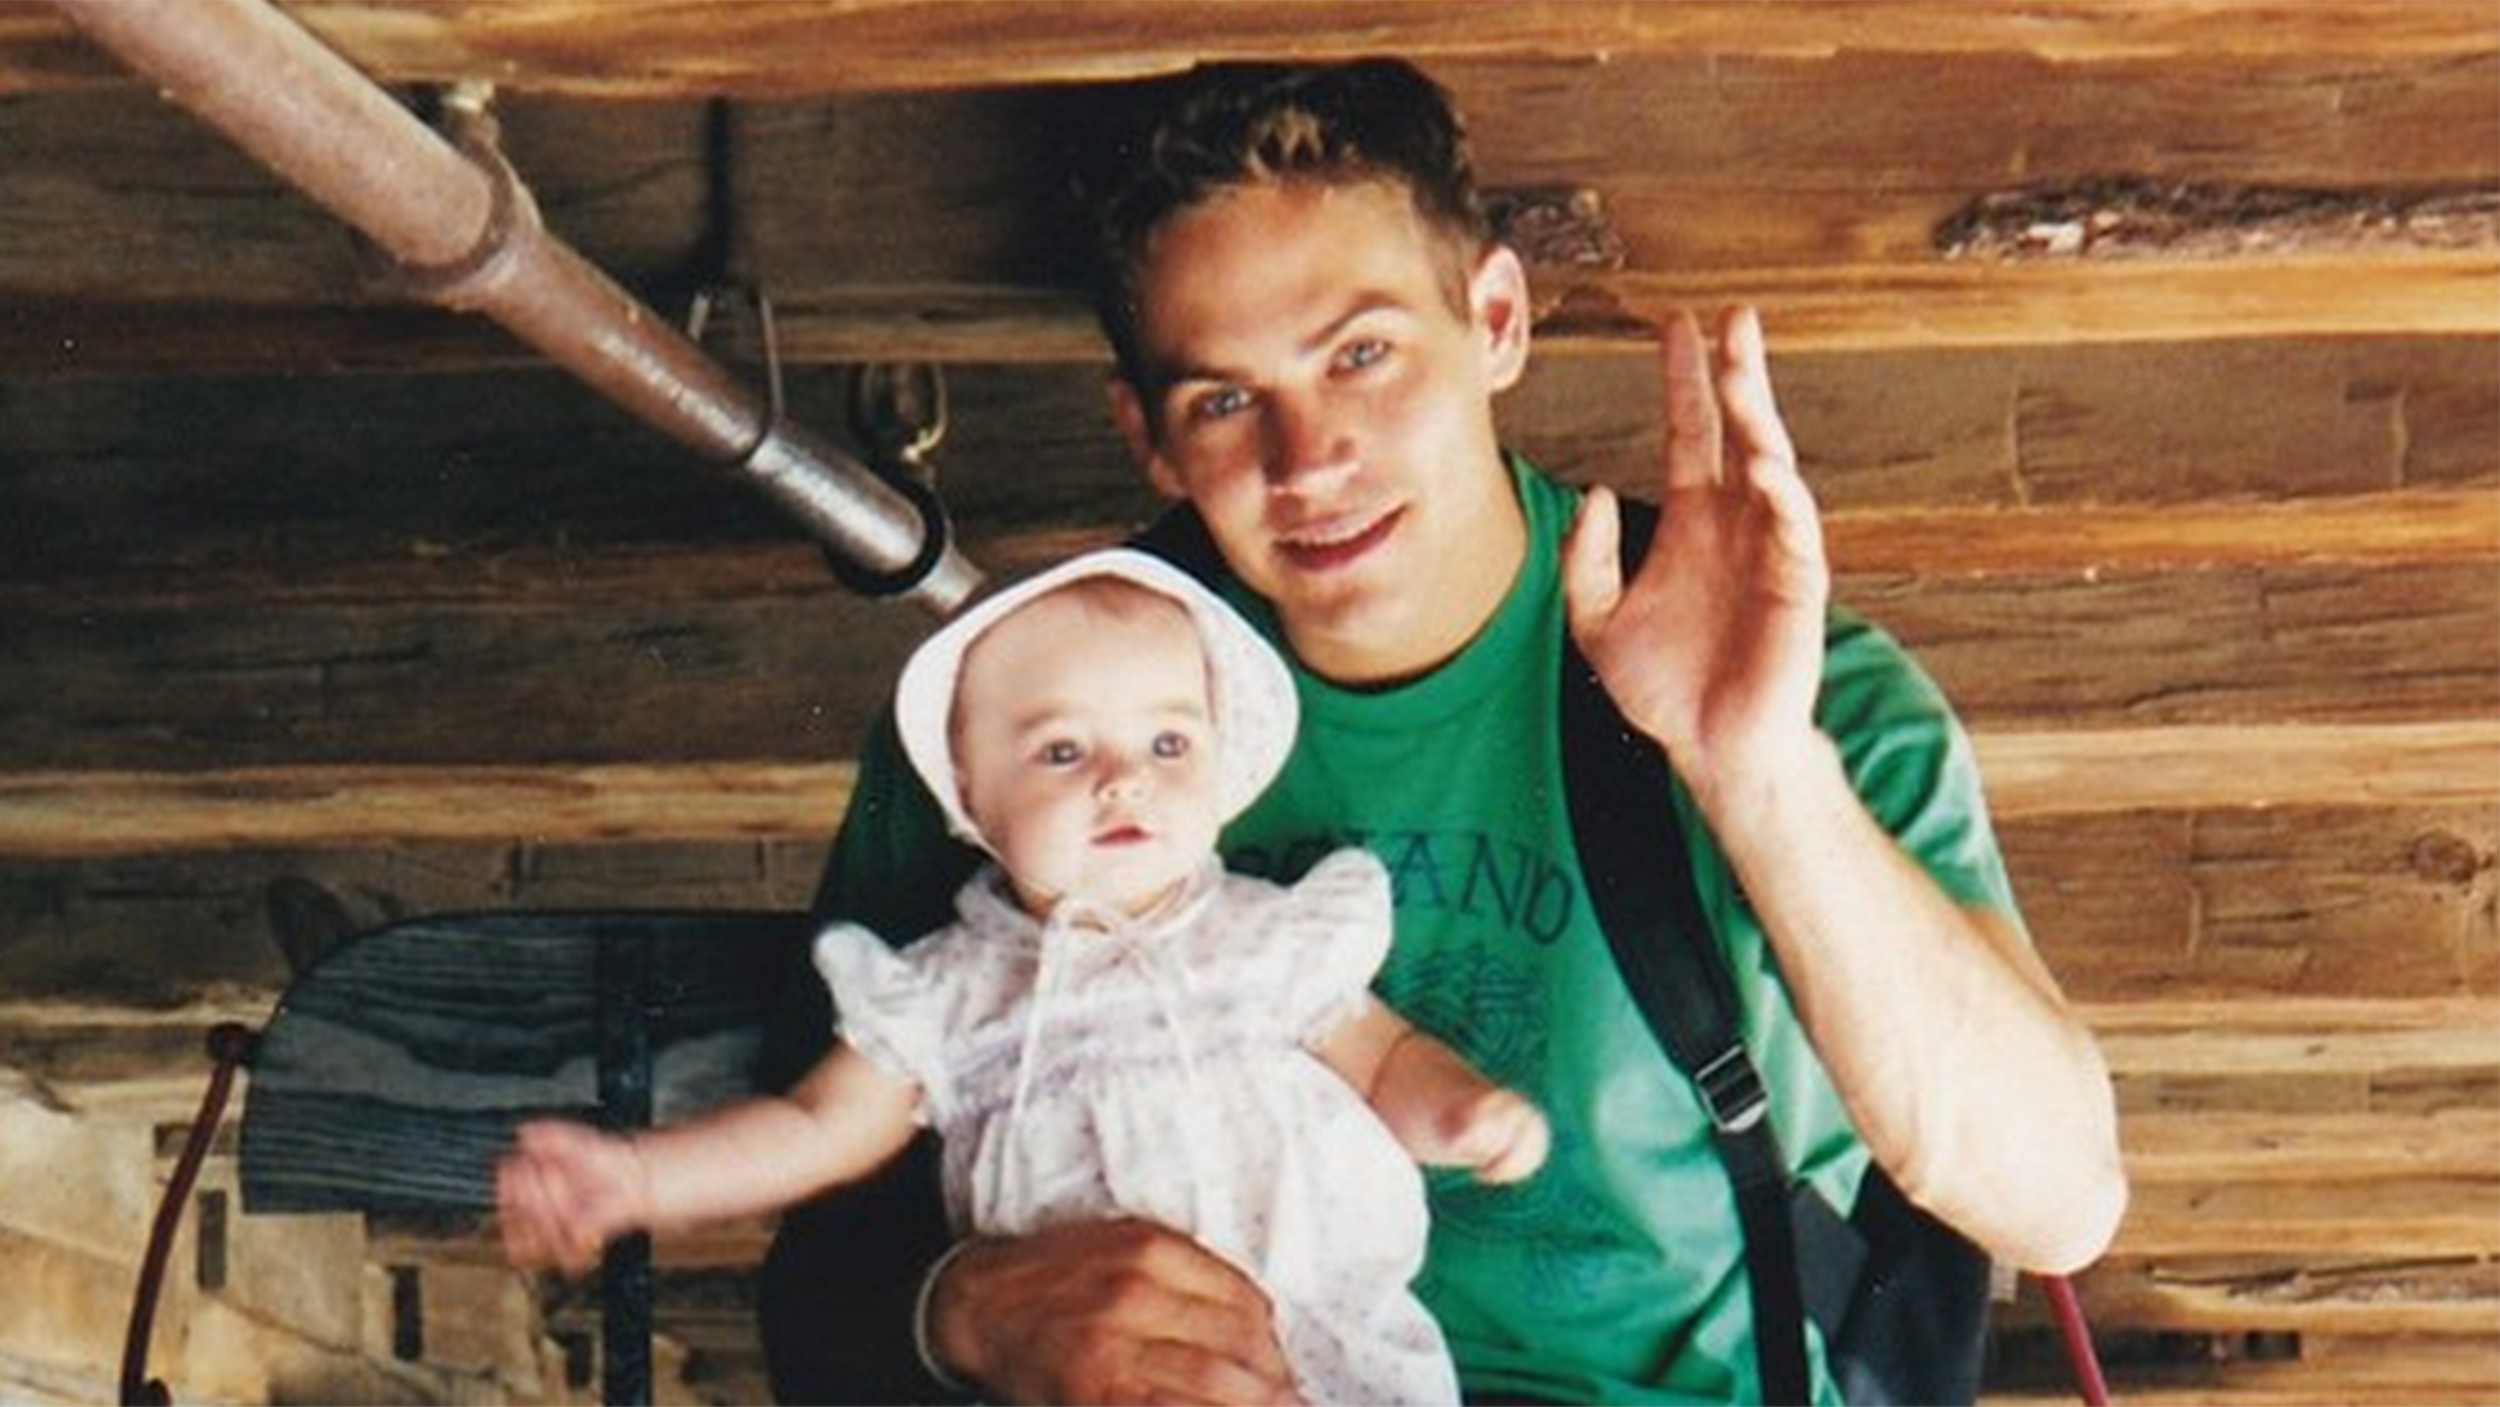 paul walker 39 s daughter shares sweet photo on the anniversary of his death. Black Bedroom Furniture Sets. Home Design Ideas